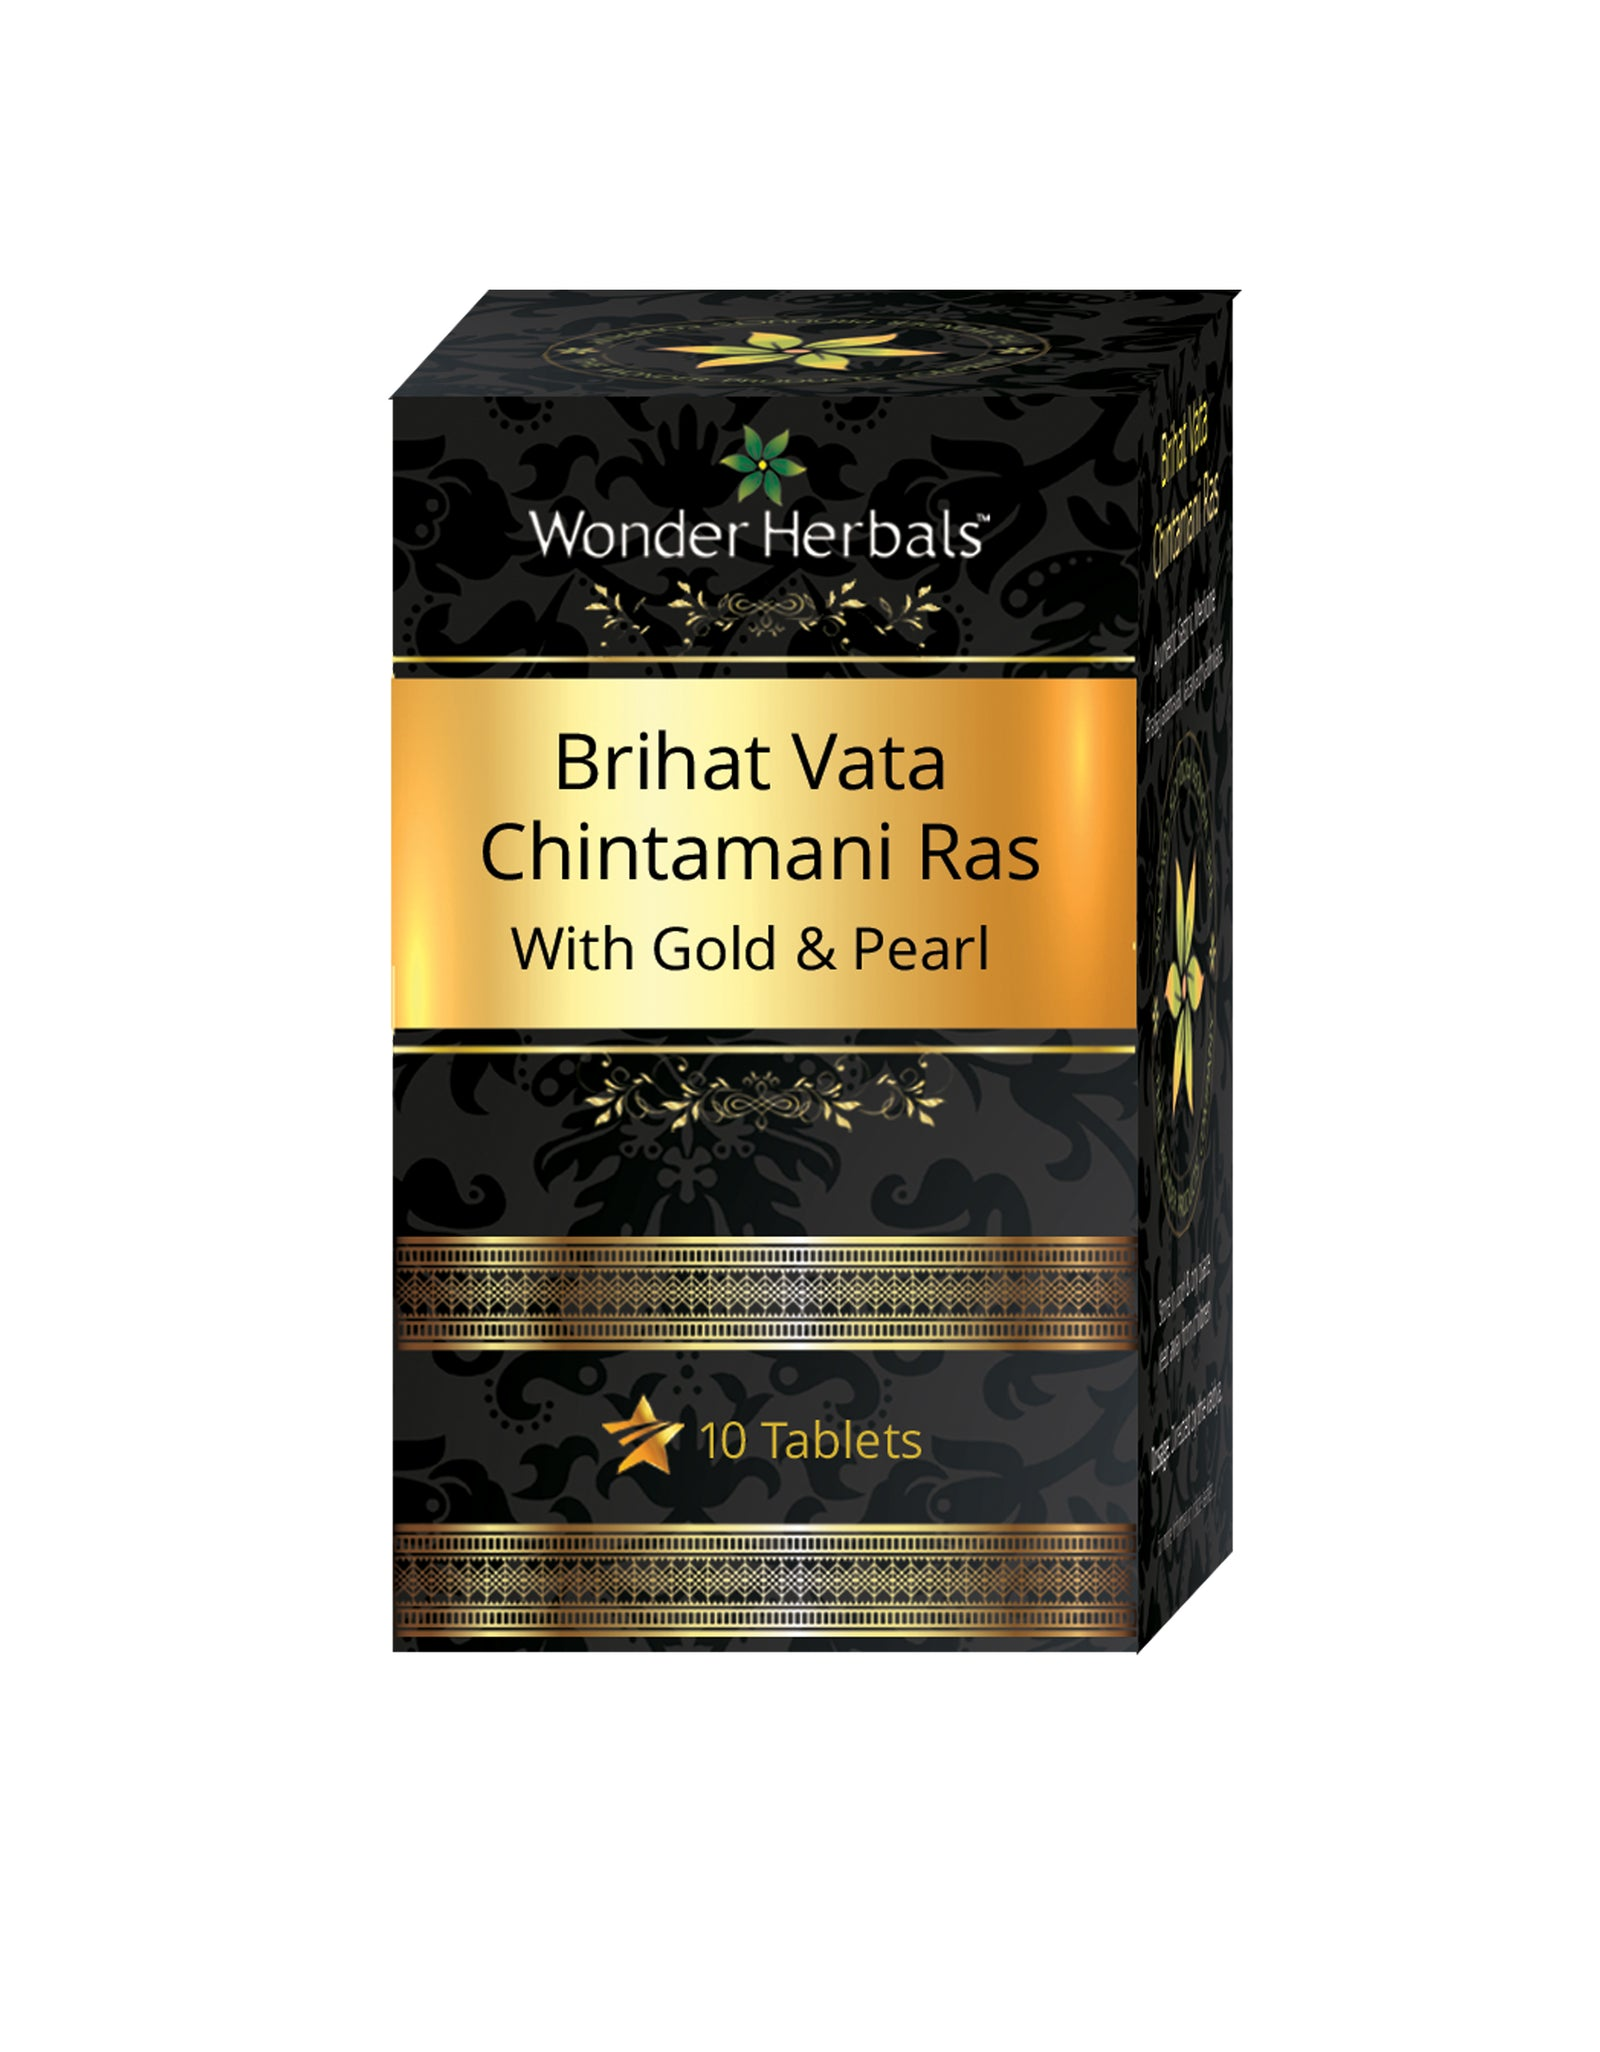 Brihat vatachintamani ras with gold - Wonderherbals